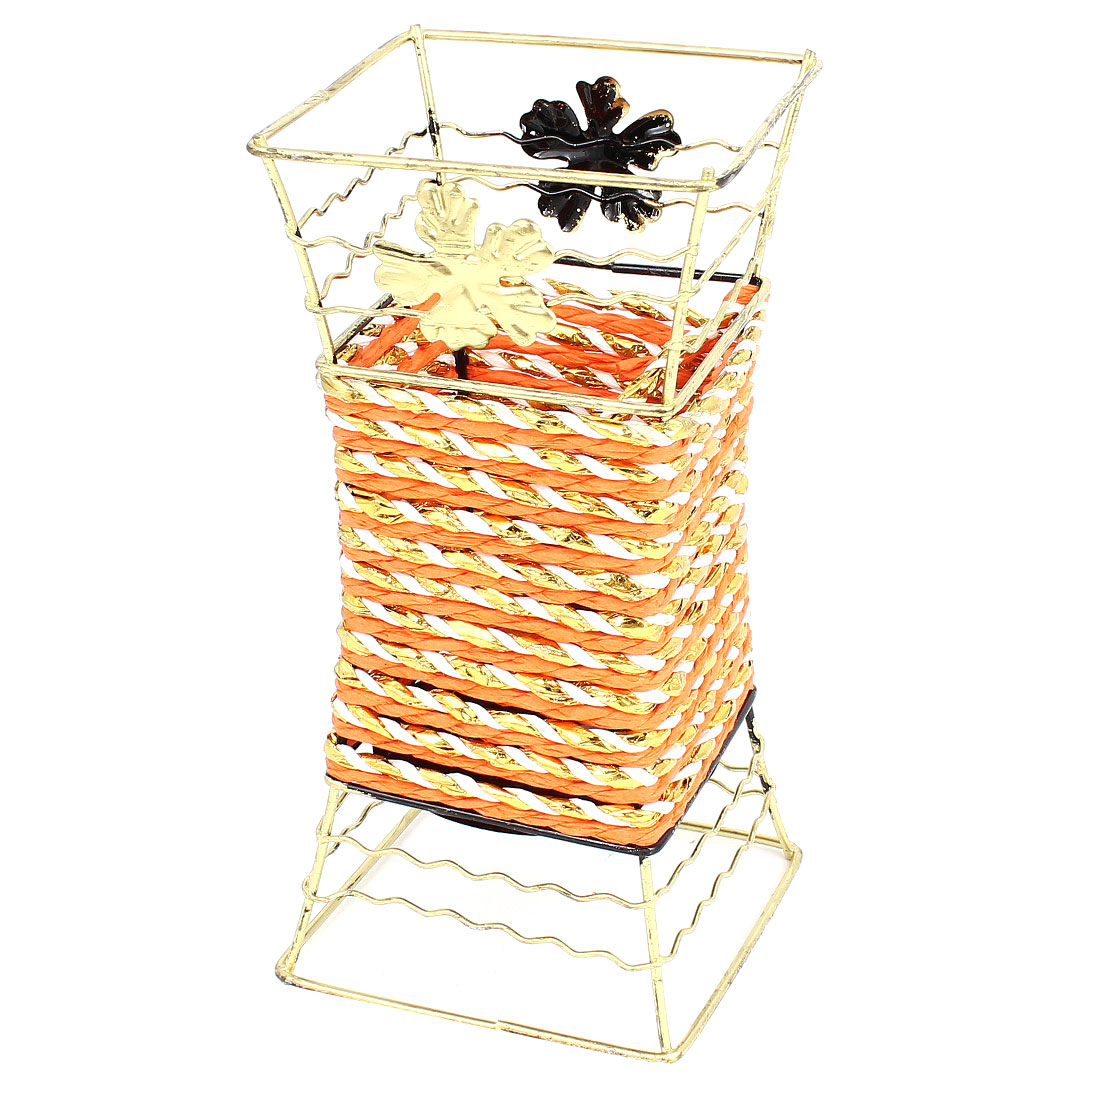 Copper Tone Metal Frame White Paper String Decor Craft Flowers Vase Basket